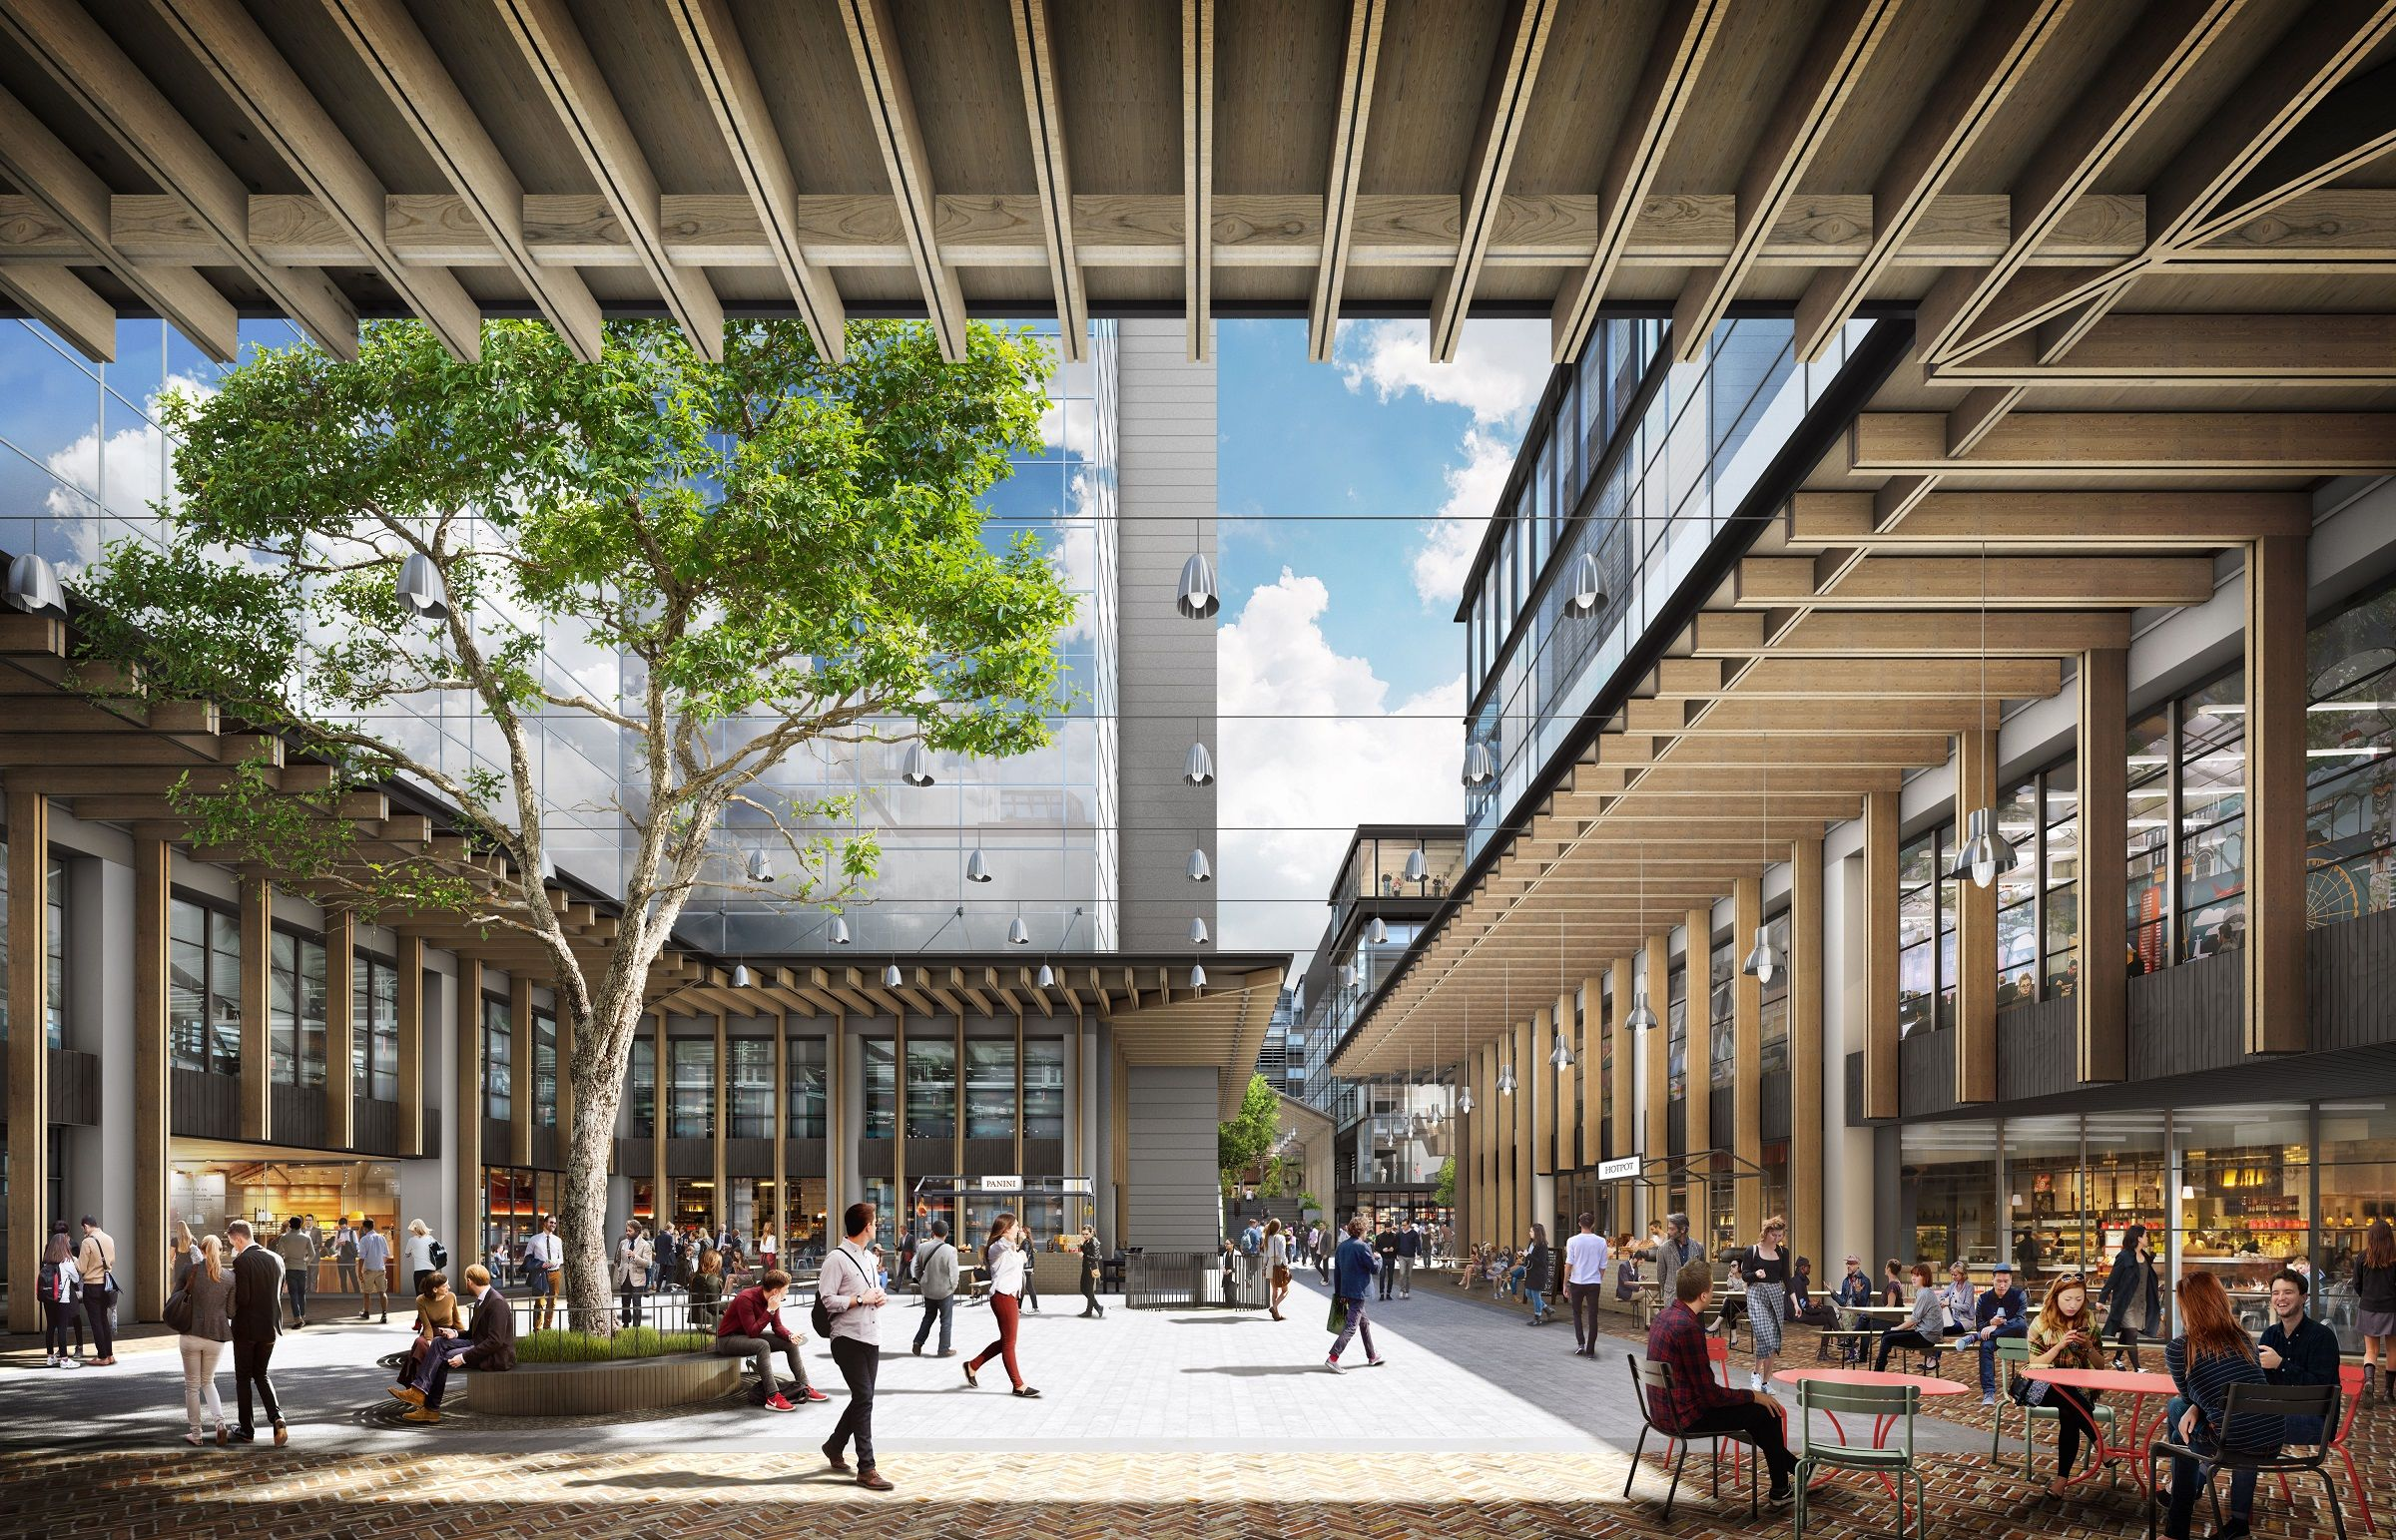 Thomas More Square By Gensler In London, United Kingdom